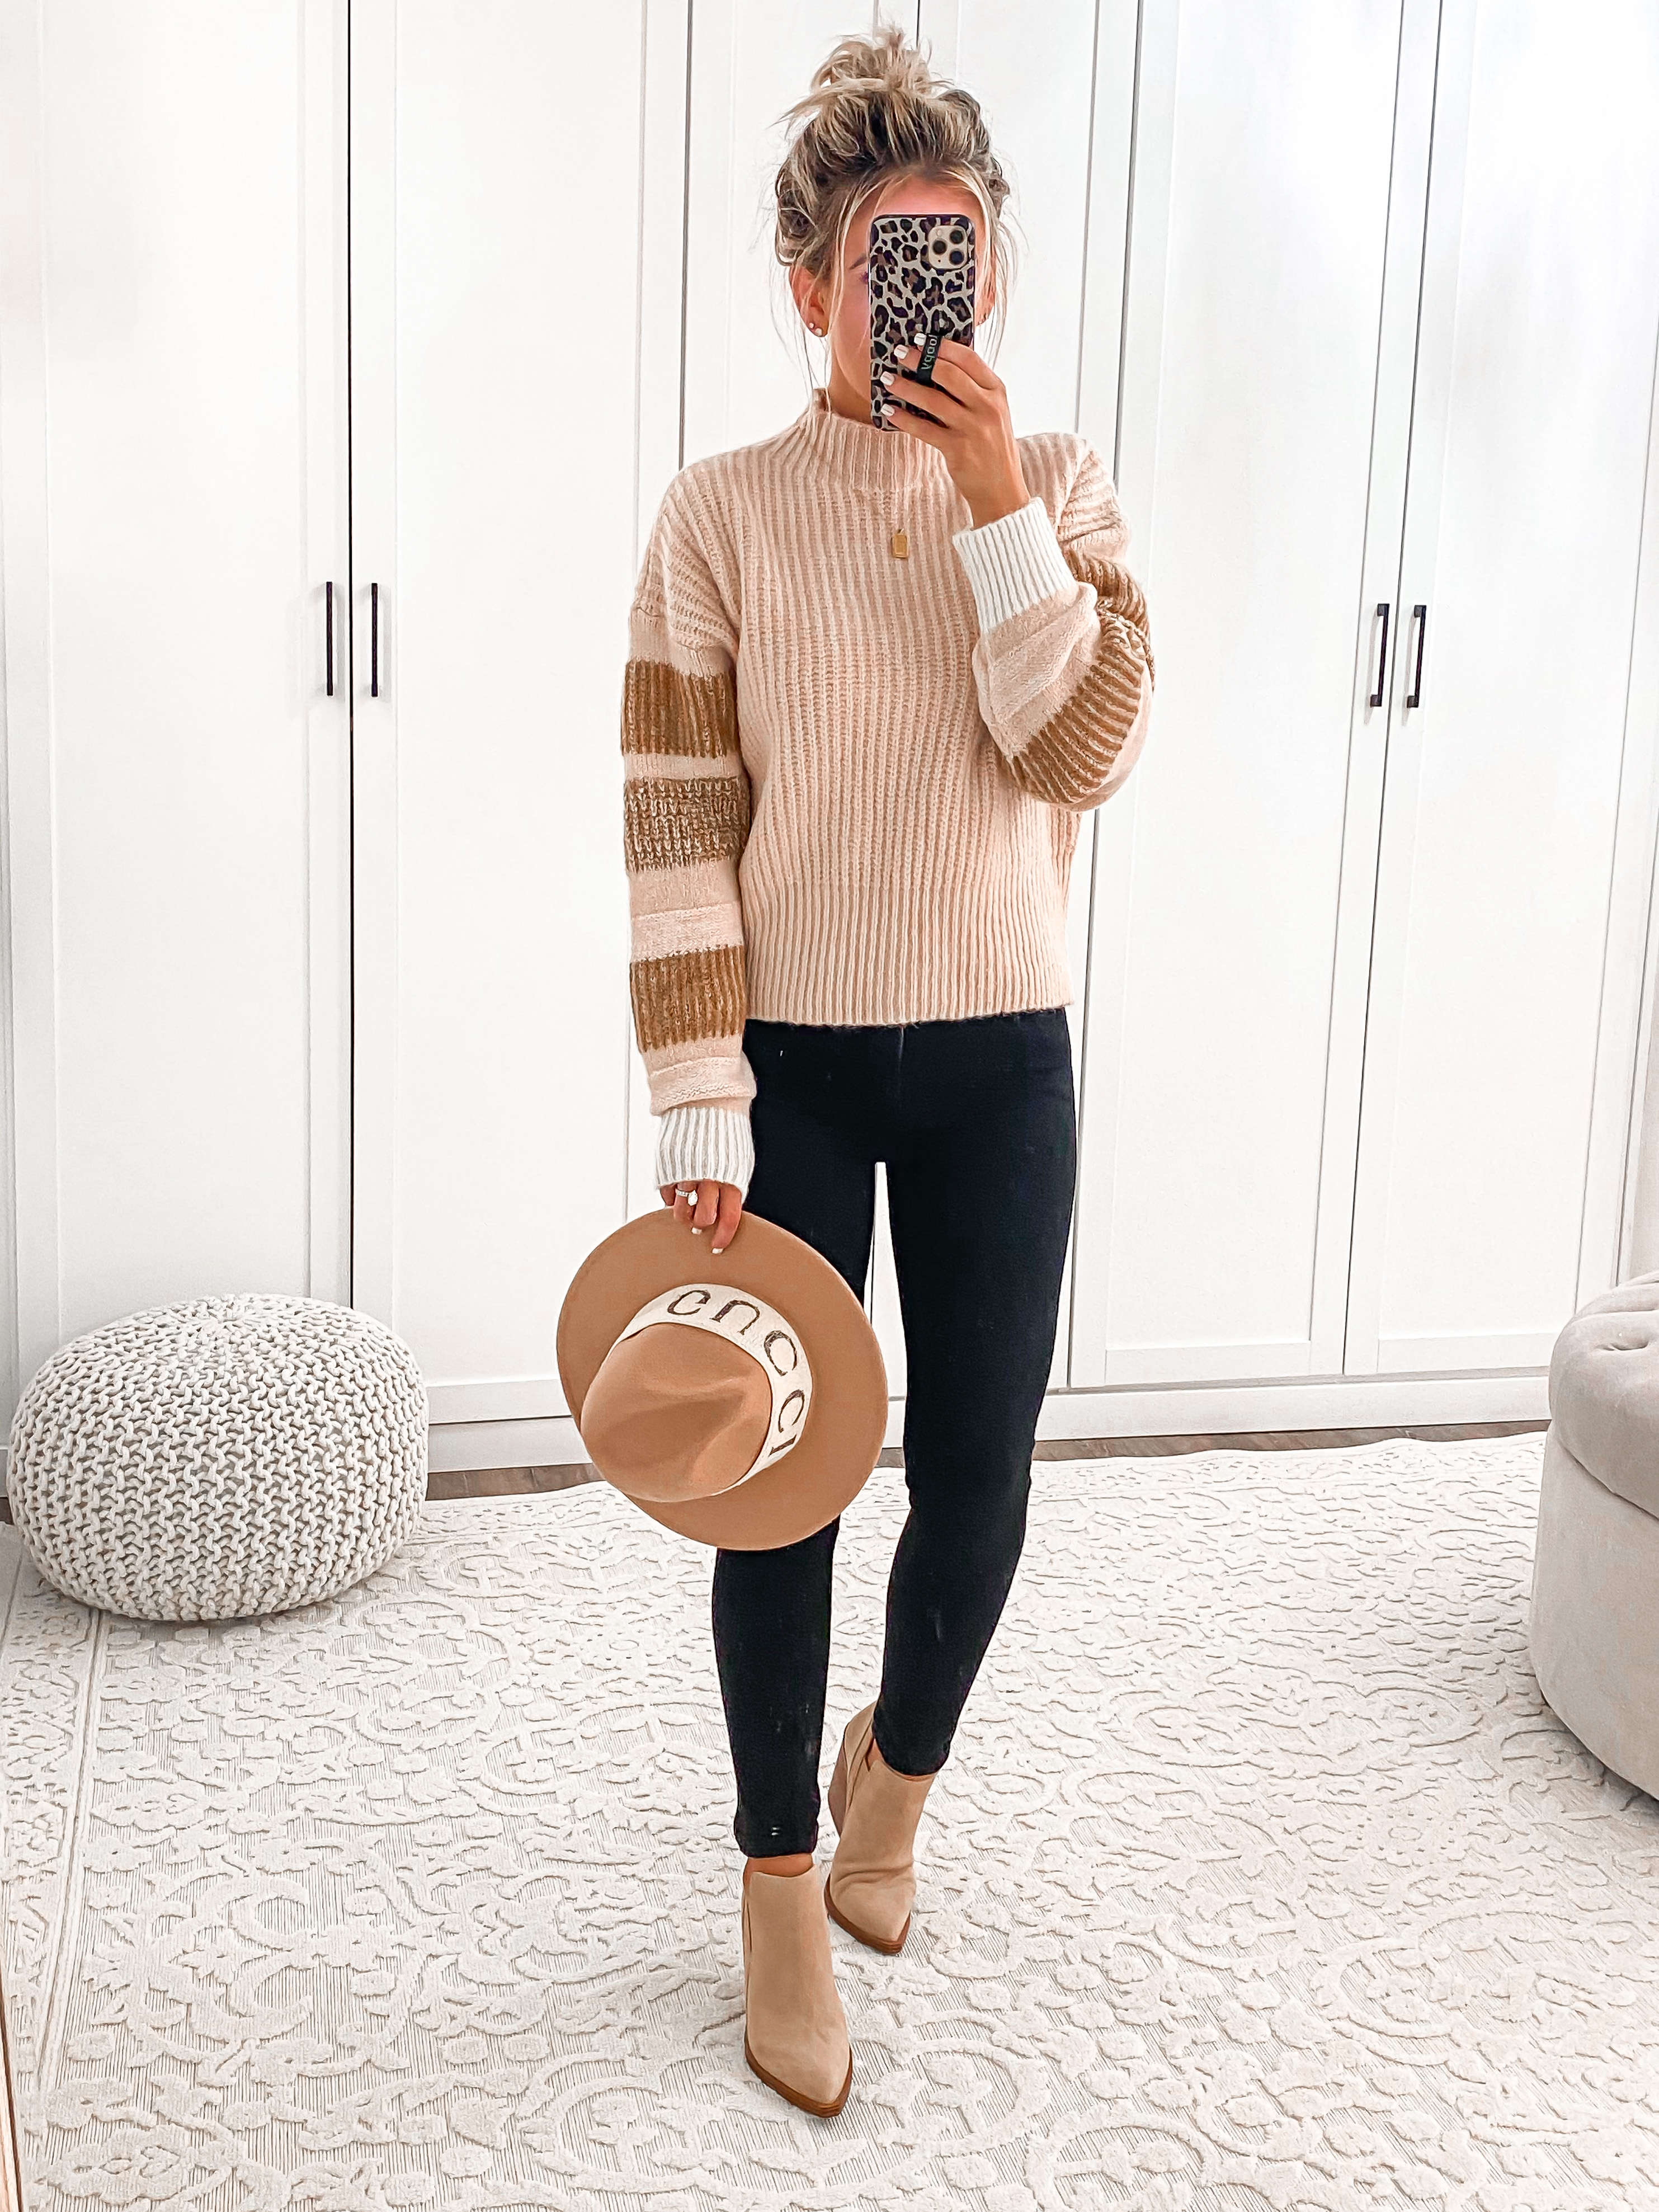 Nordstrom Anniversary Sale 2020 Nsale Laura Beverlin Fall outfit ideas20